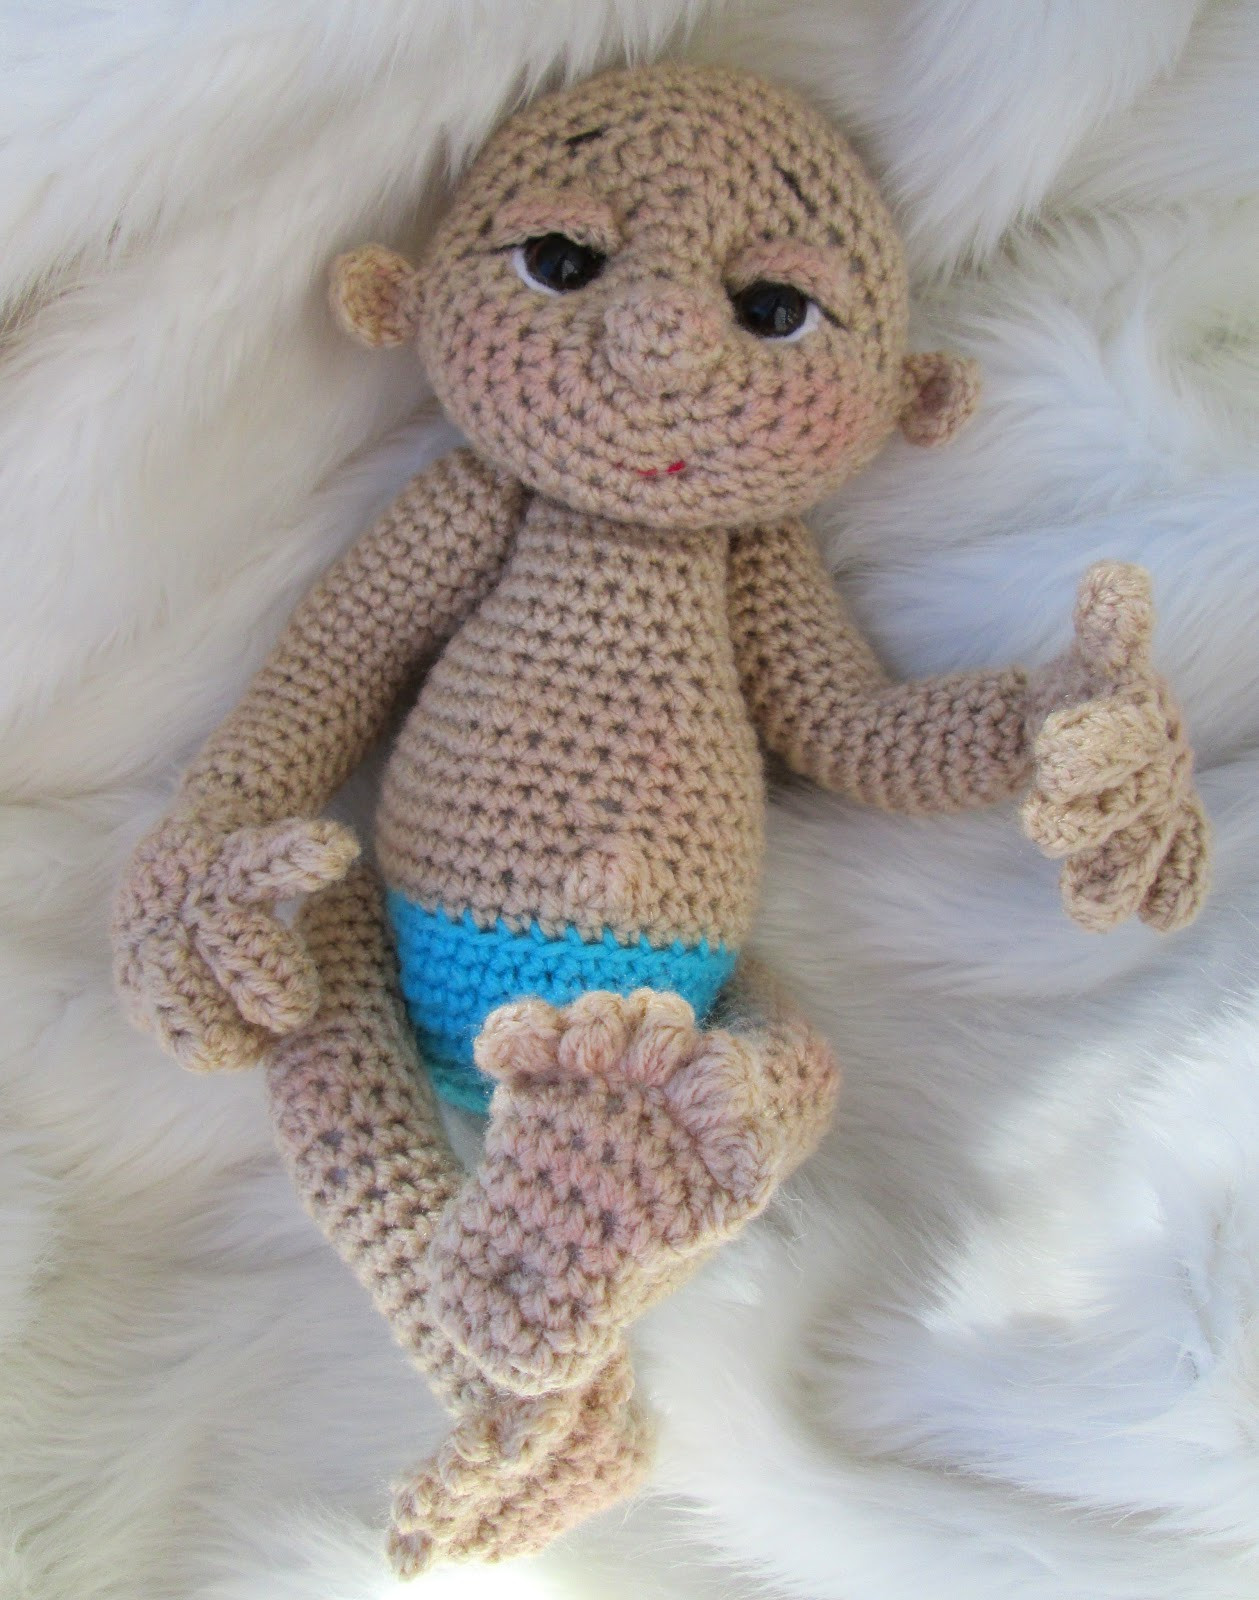 Crochet Doll New Teri S Blog Tutorials Jointing Needle Scultping Stitch Of Delightful 47 Pictures Crochet Doll